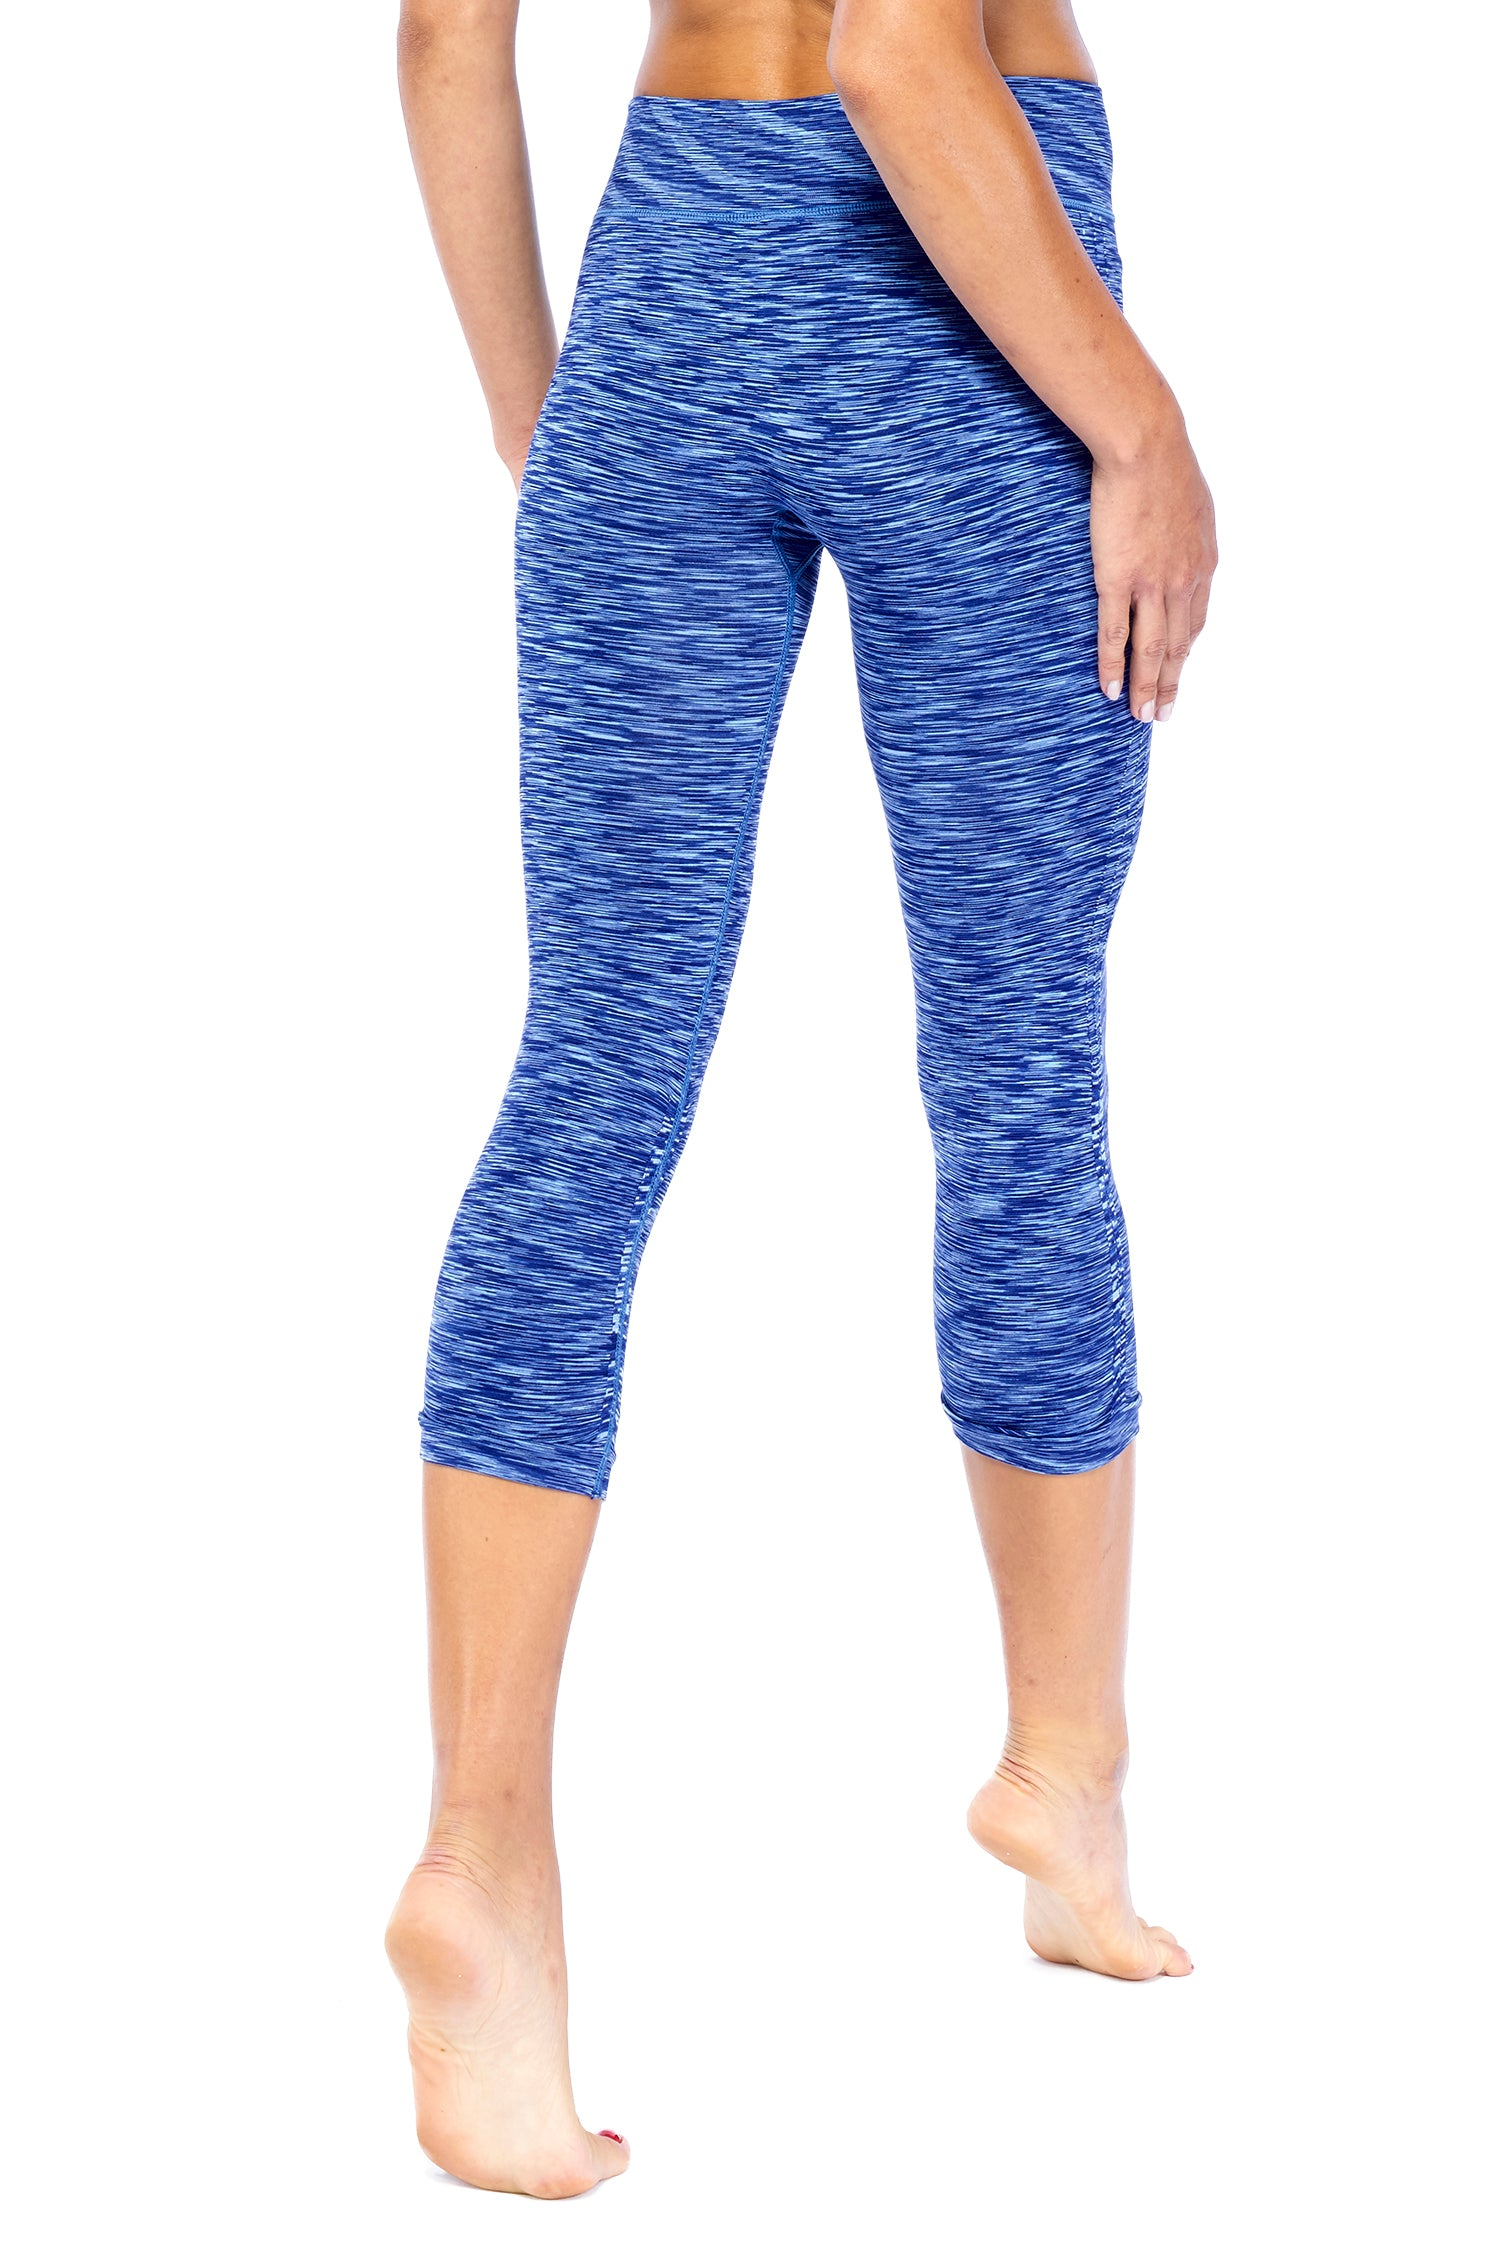 Blend In Zen Stand Out Legging-Blue Royal